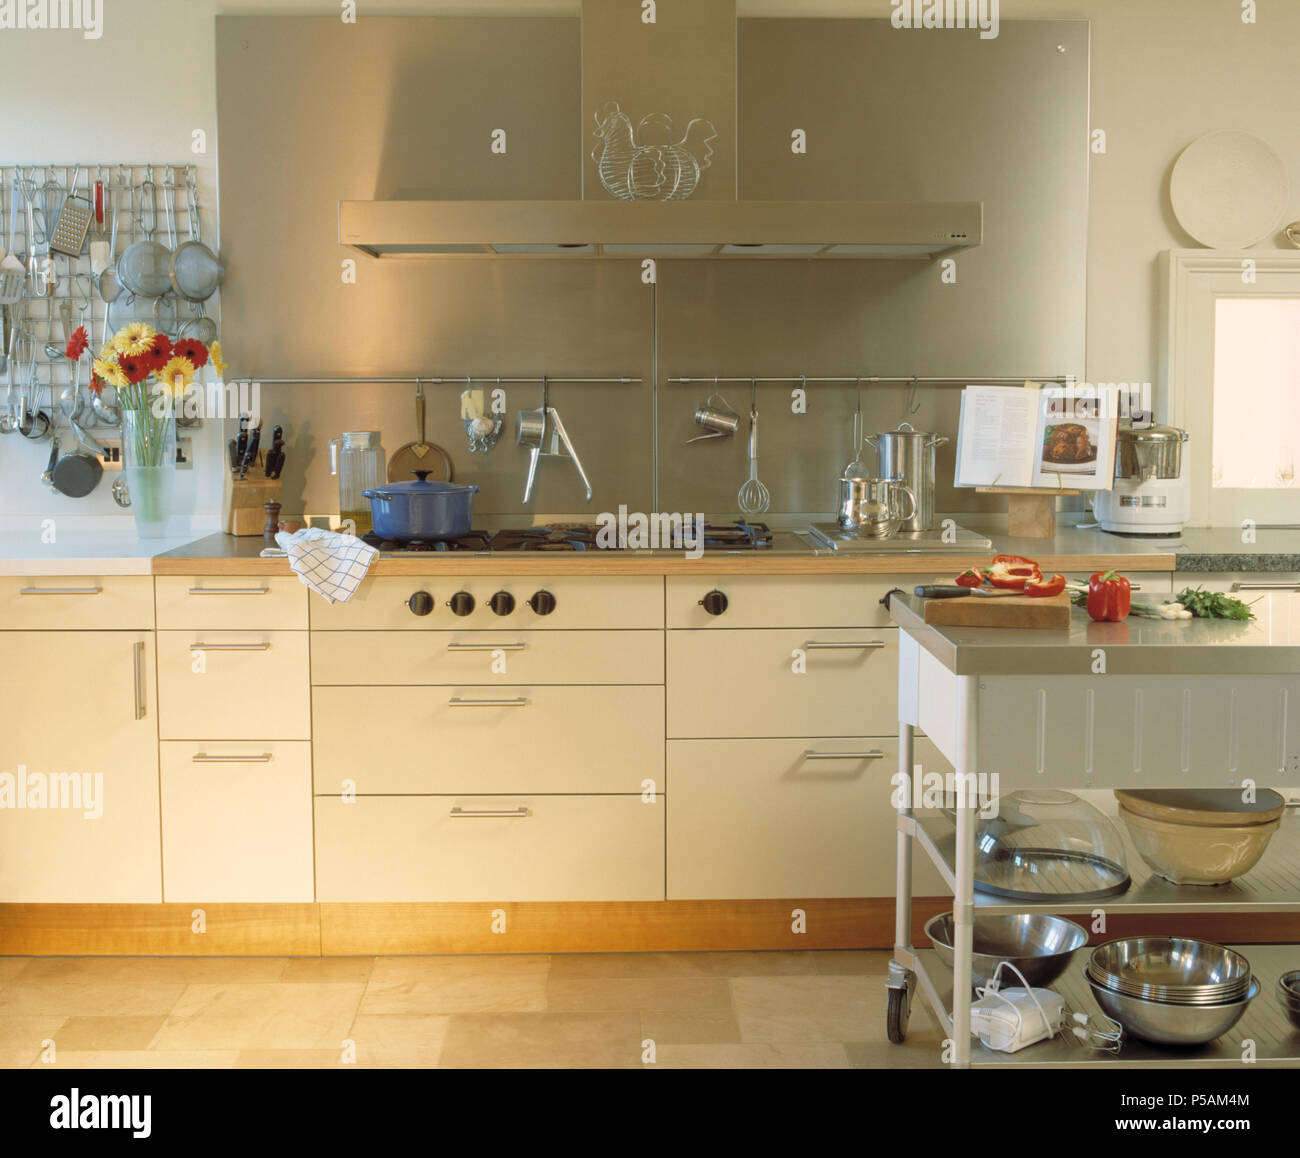 Stainless Steel Splashback Stainless Steel Splashback Above White Fitted Units In Modern